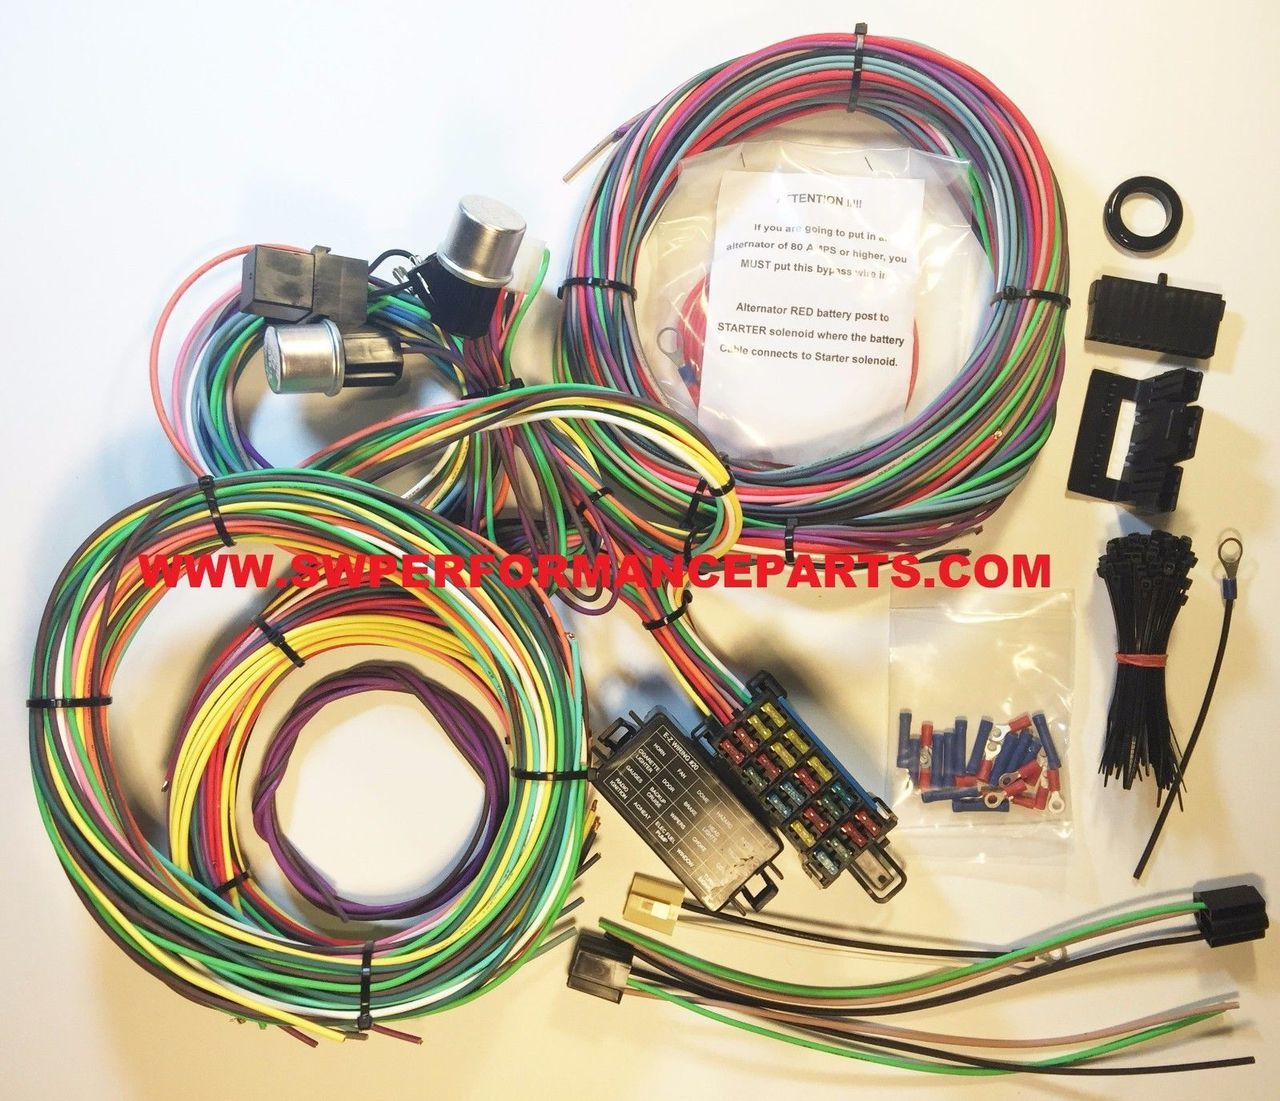 hight resolution of new 21 circuit ez wiring harness mini fuse chevy ford hotrods universal xl wires swpp walmart com